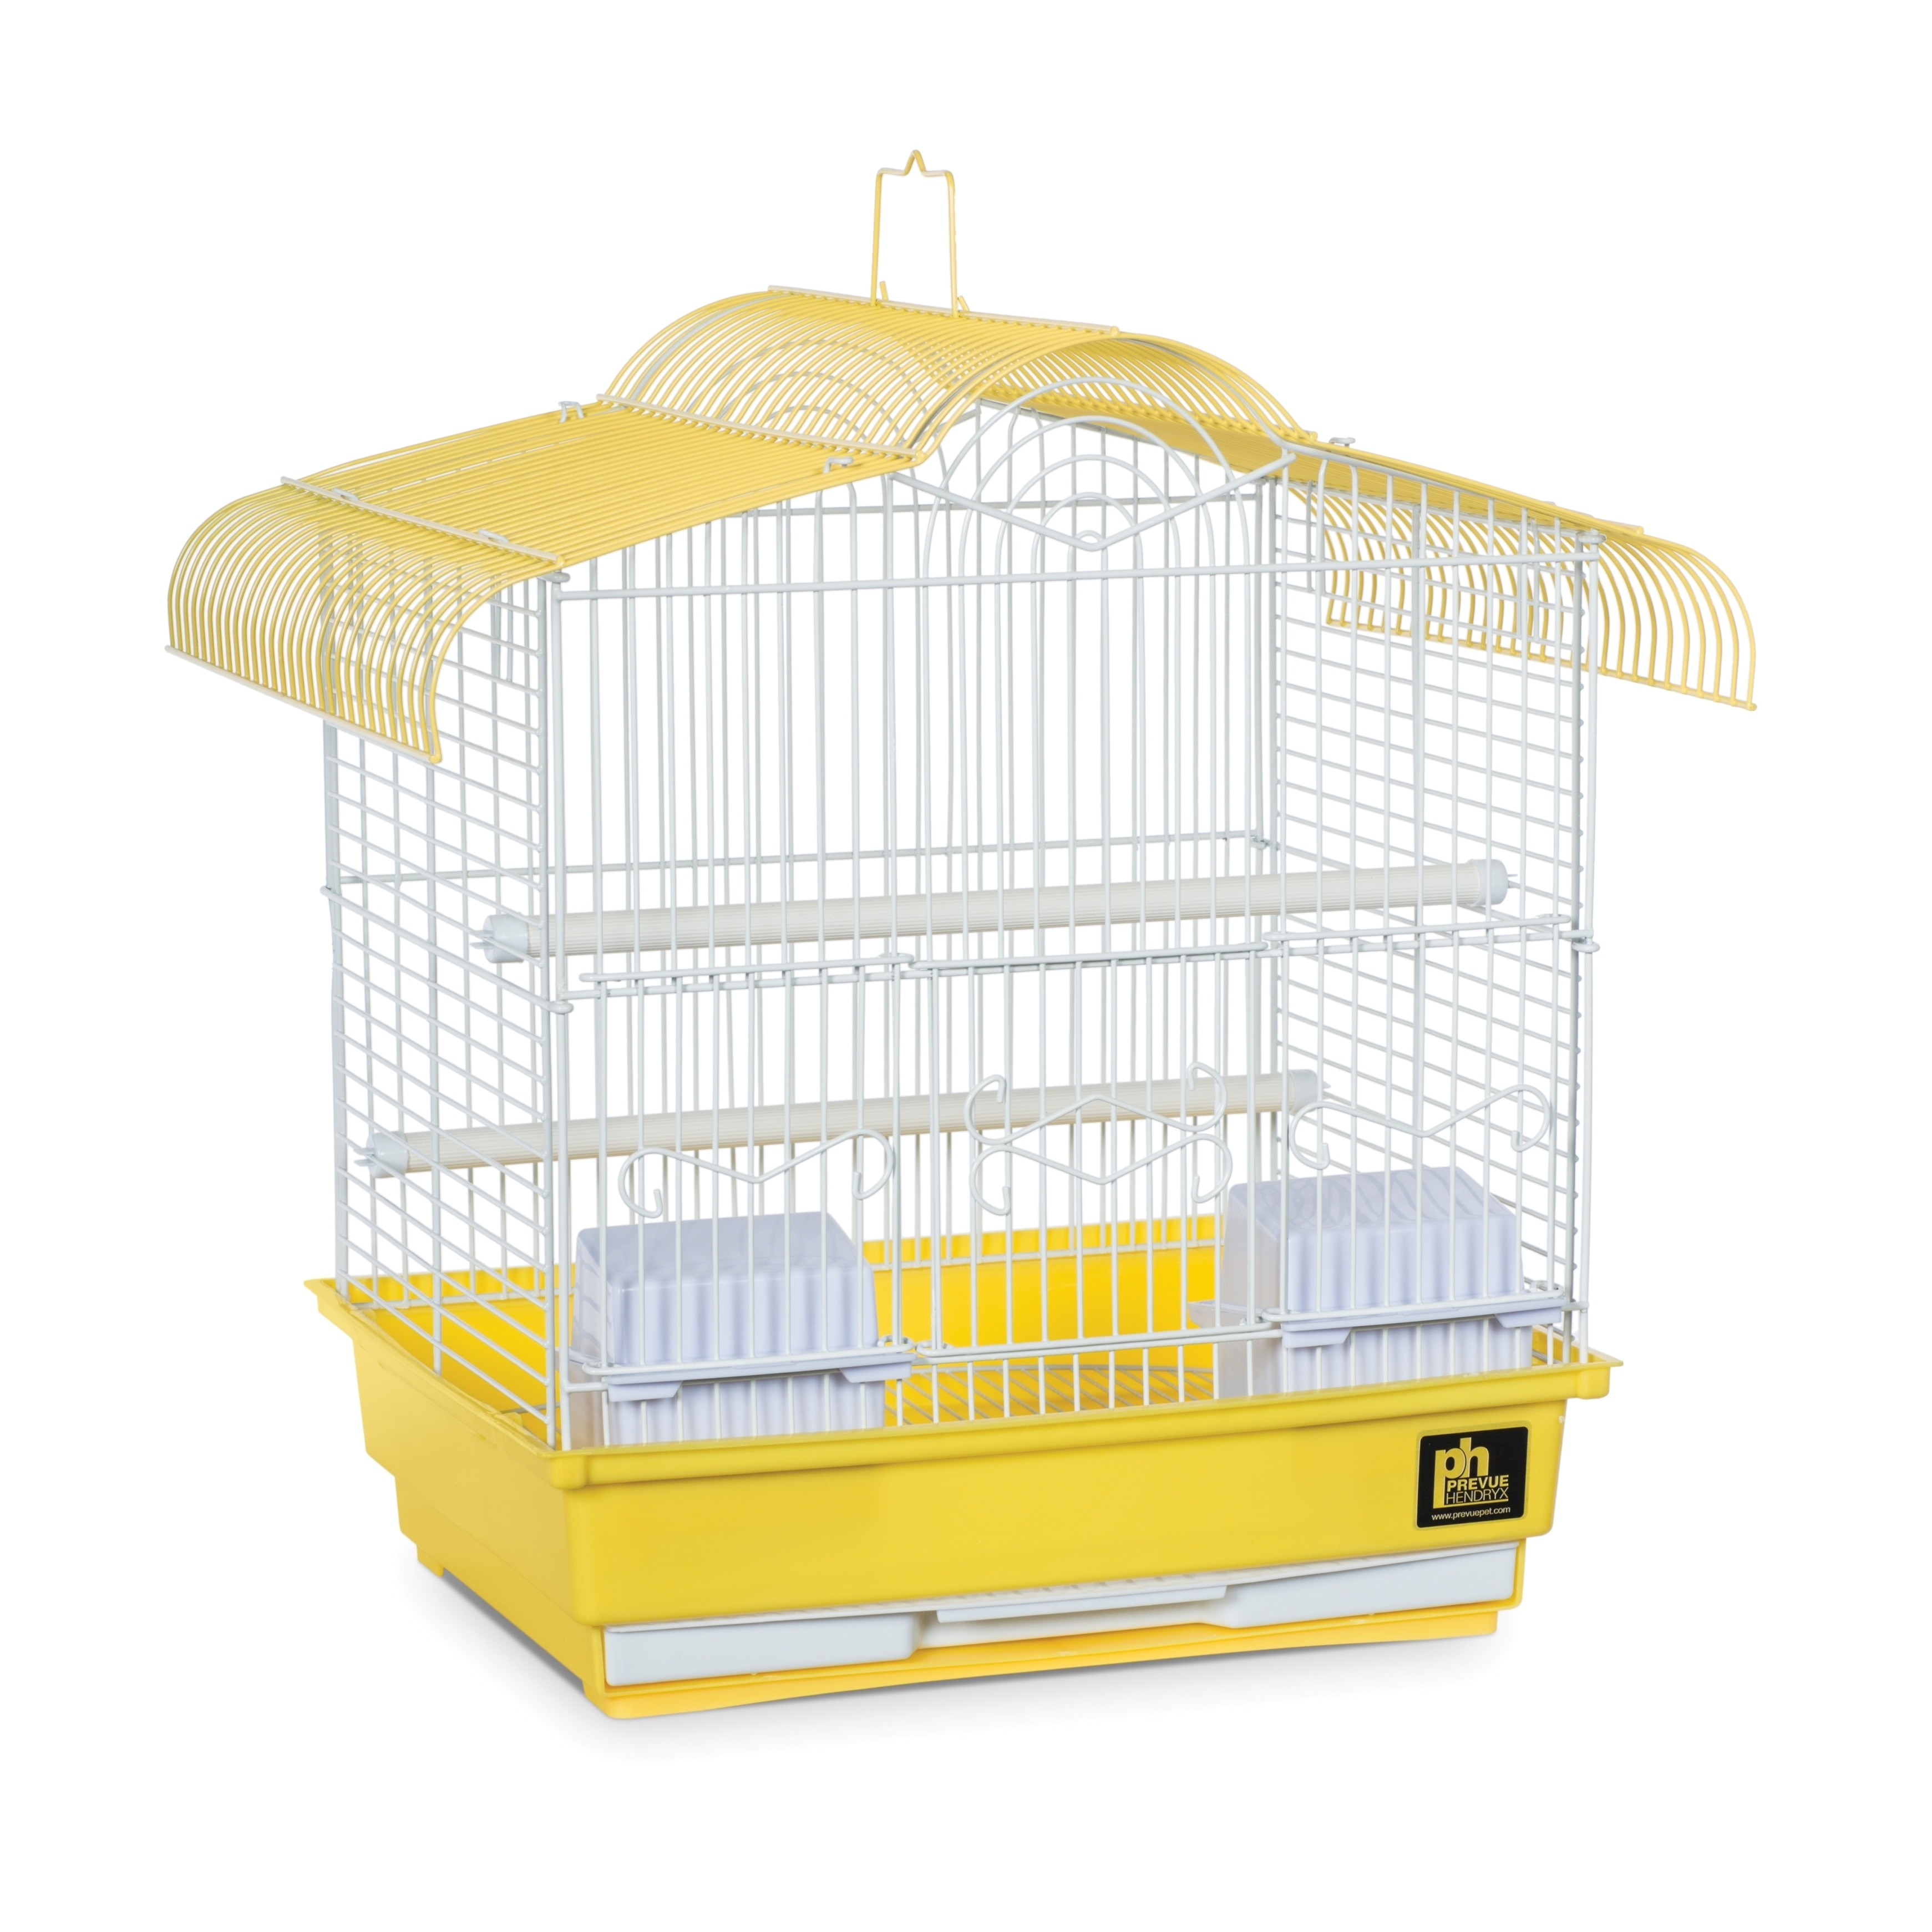 Prevue Pet Products Small Bird Cage (Yellow), White, Size...